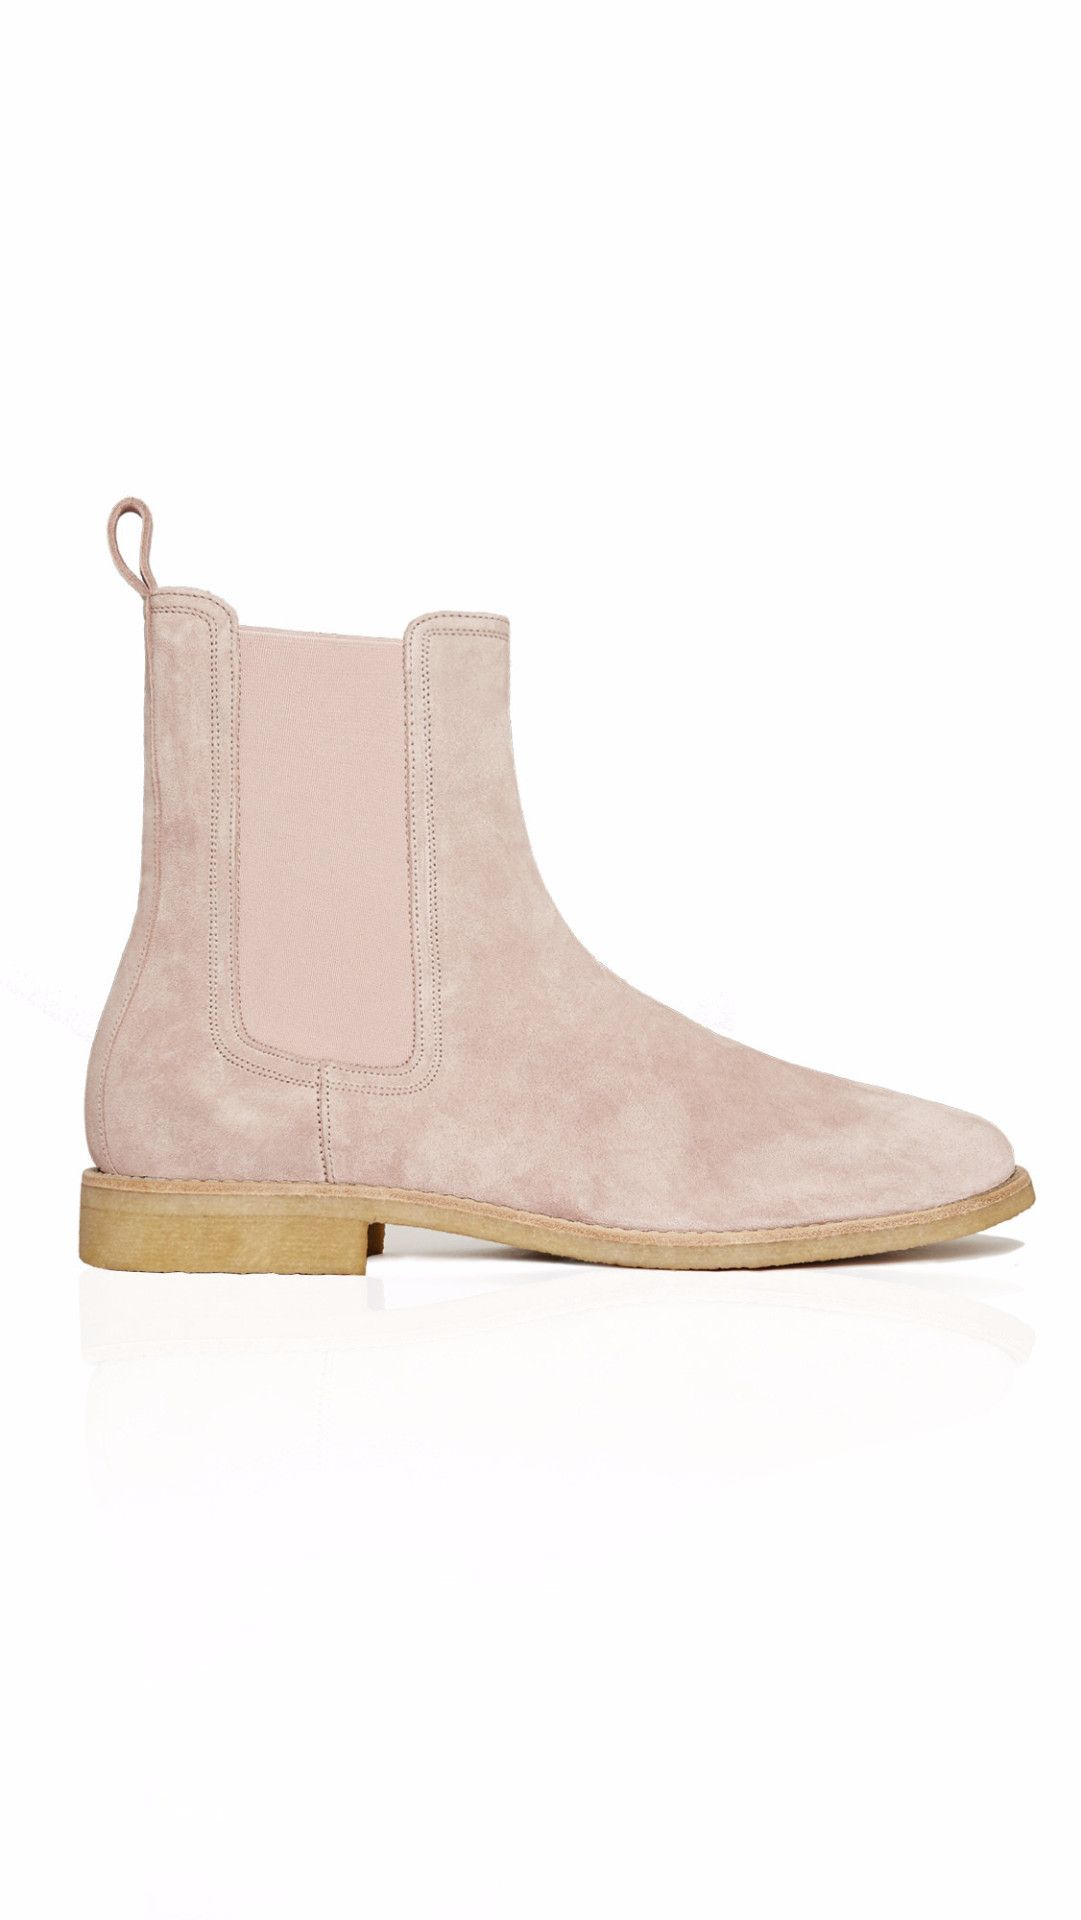 Chelsea Boot Pearl Boots Chelsea Boots Ankle Boot